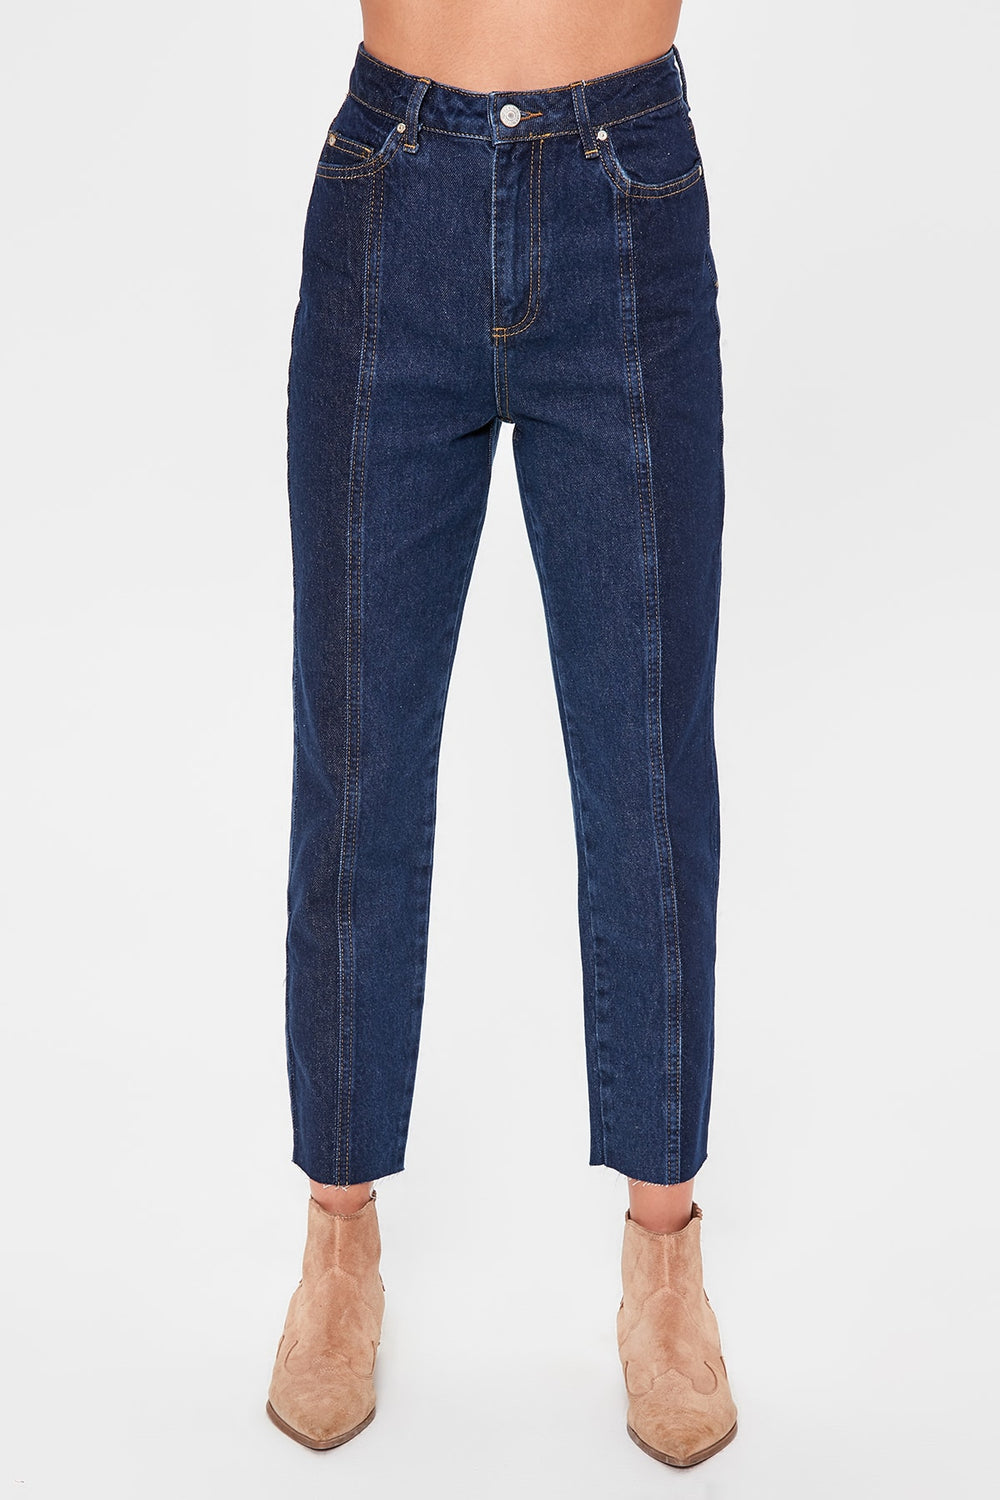 Miss Zut Miss Zut Blue Block Wash Detailed High Bel Mom Jeans Miss Zut &CO